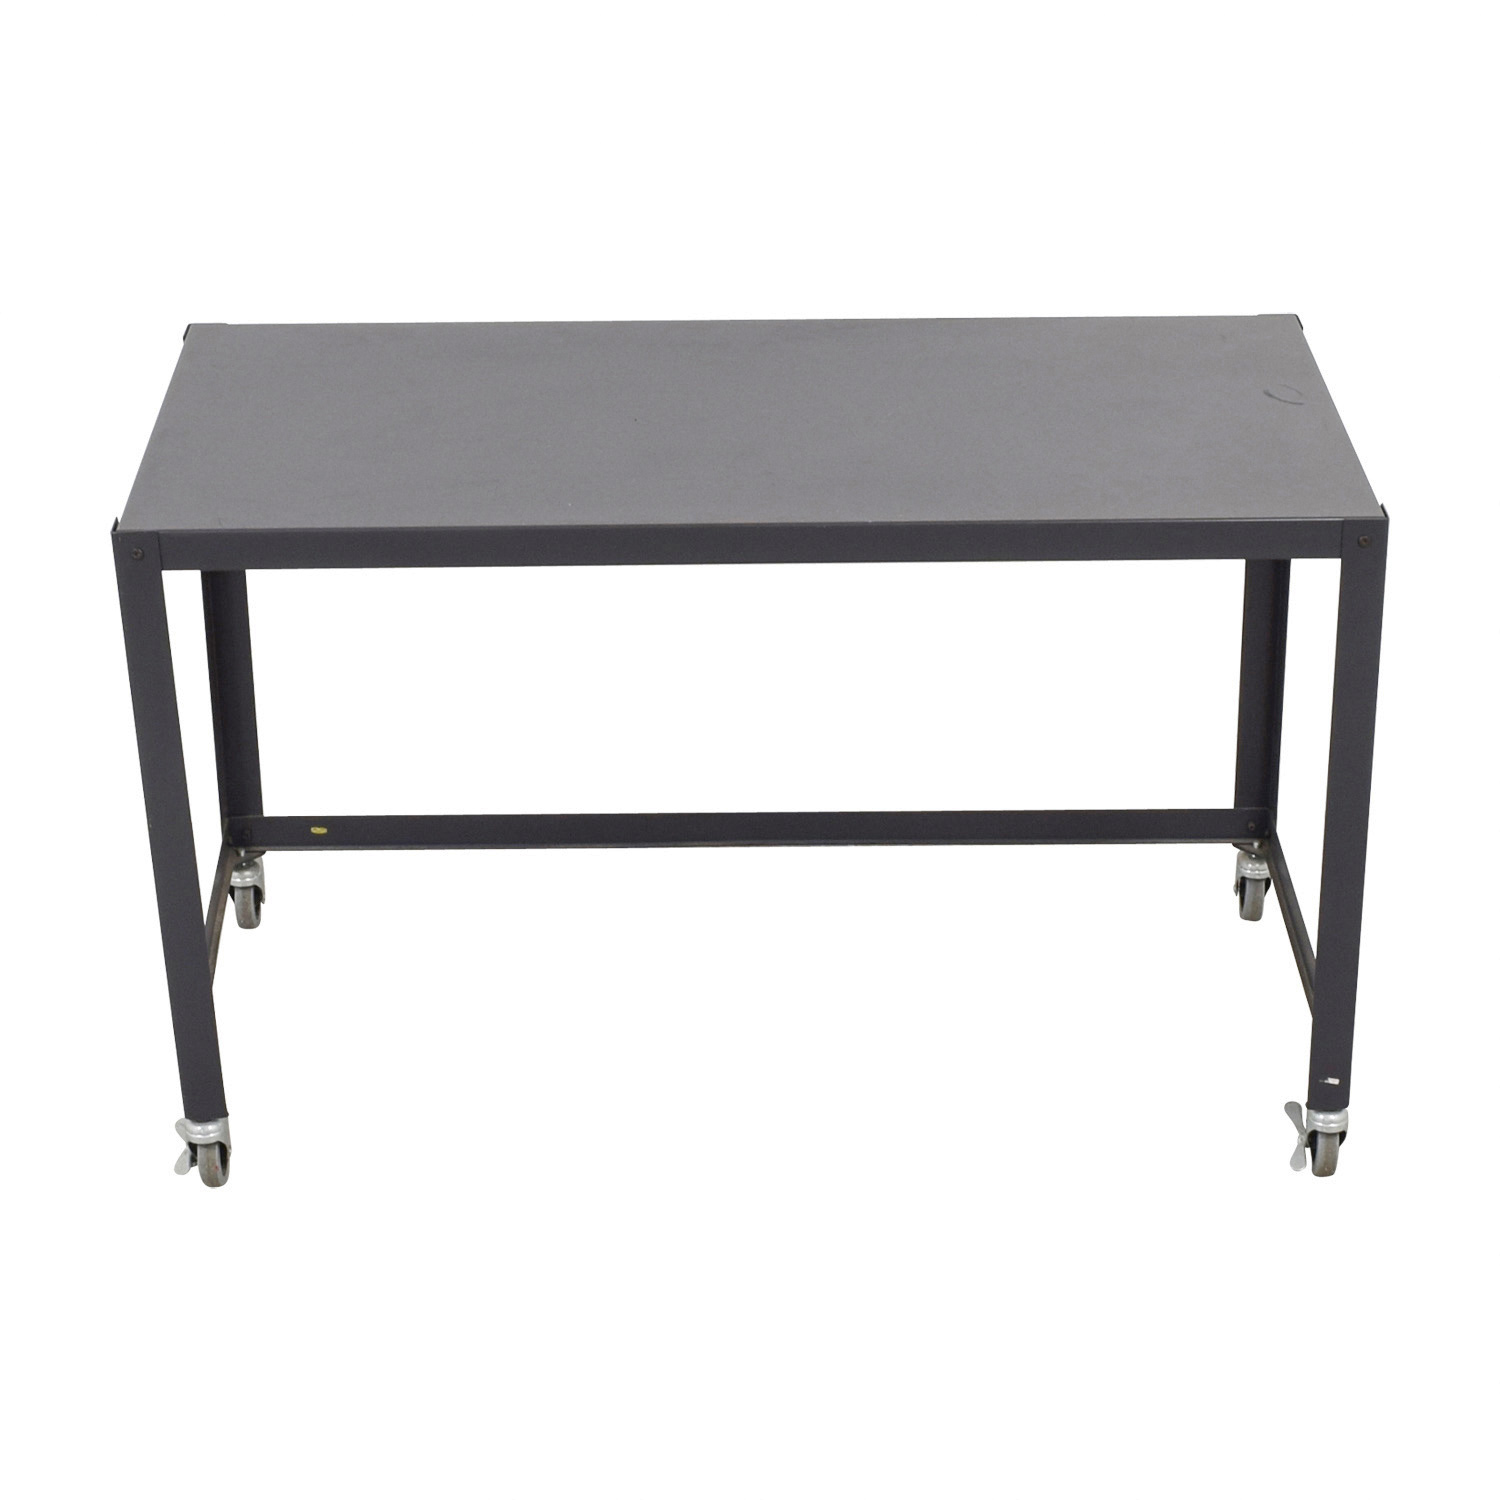 CB2 CB2 Carbon Go Cart Desk on sale